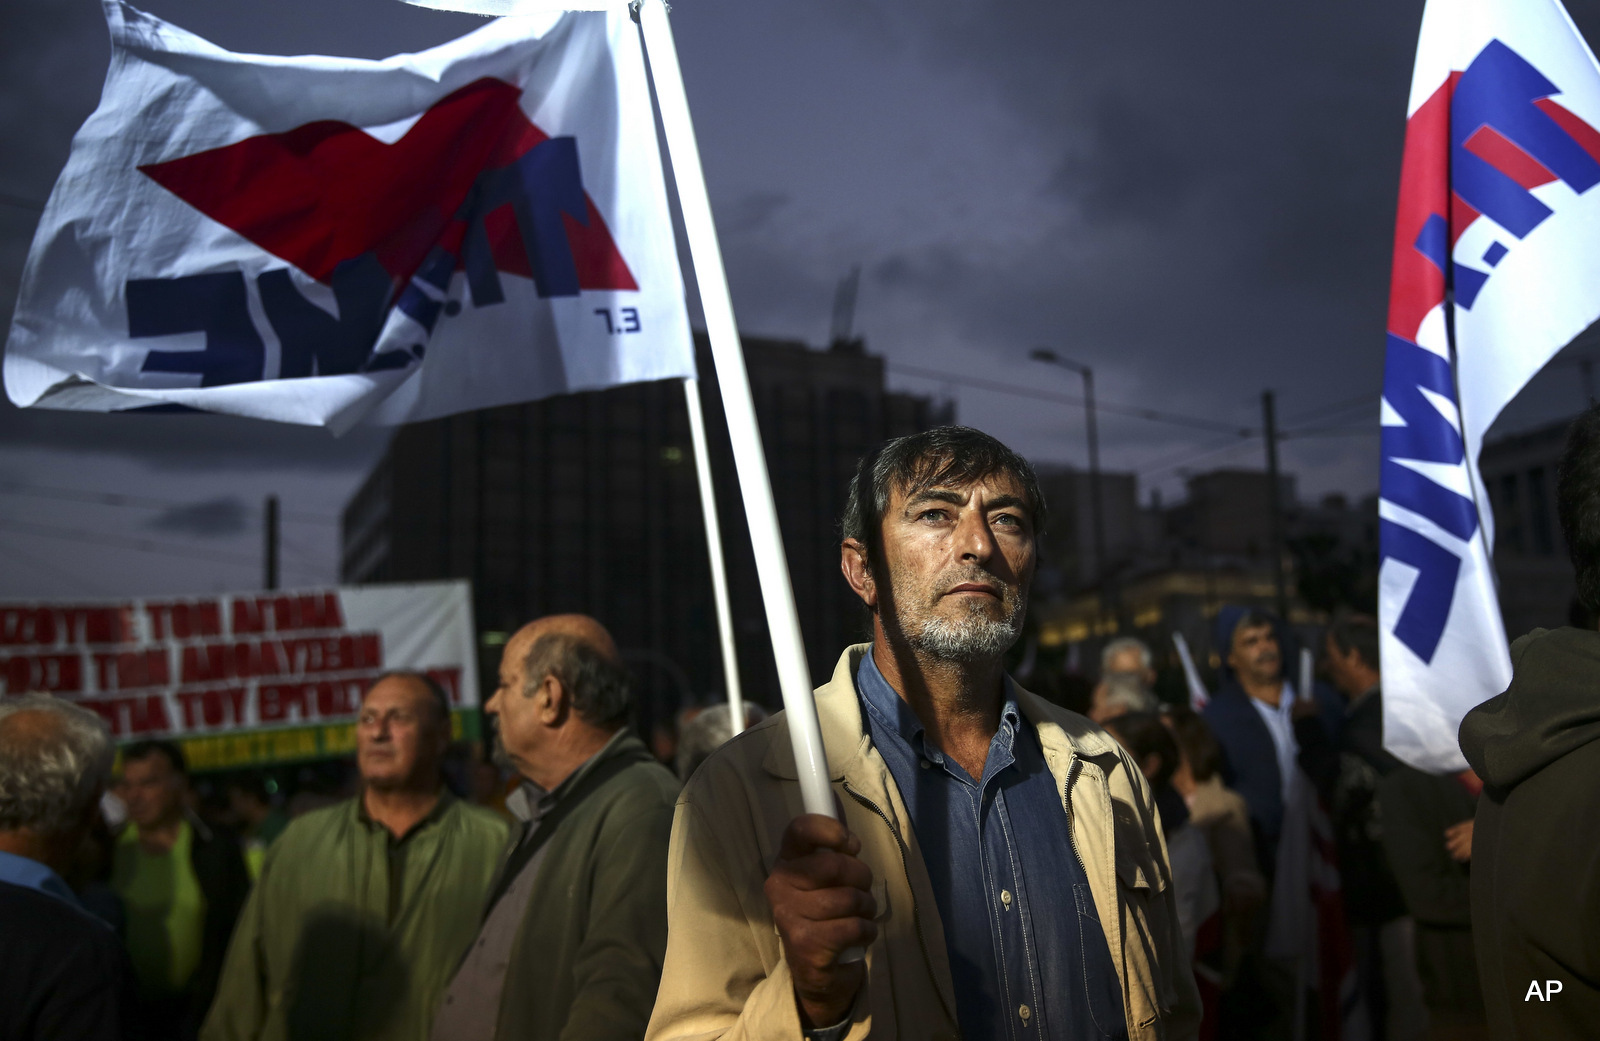 A supporter of the communist-affiliated union PAME takes part in an anti-austerity rally in front of the parliament in Athens, Monday, Oct. 17, 2016.